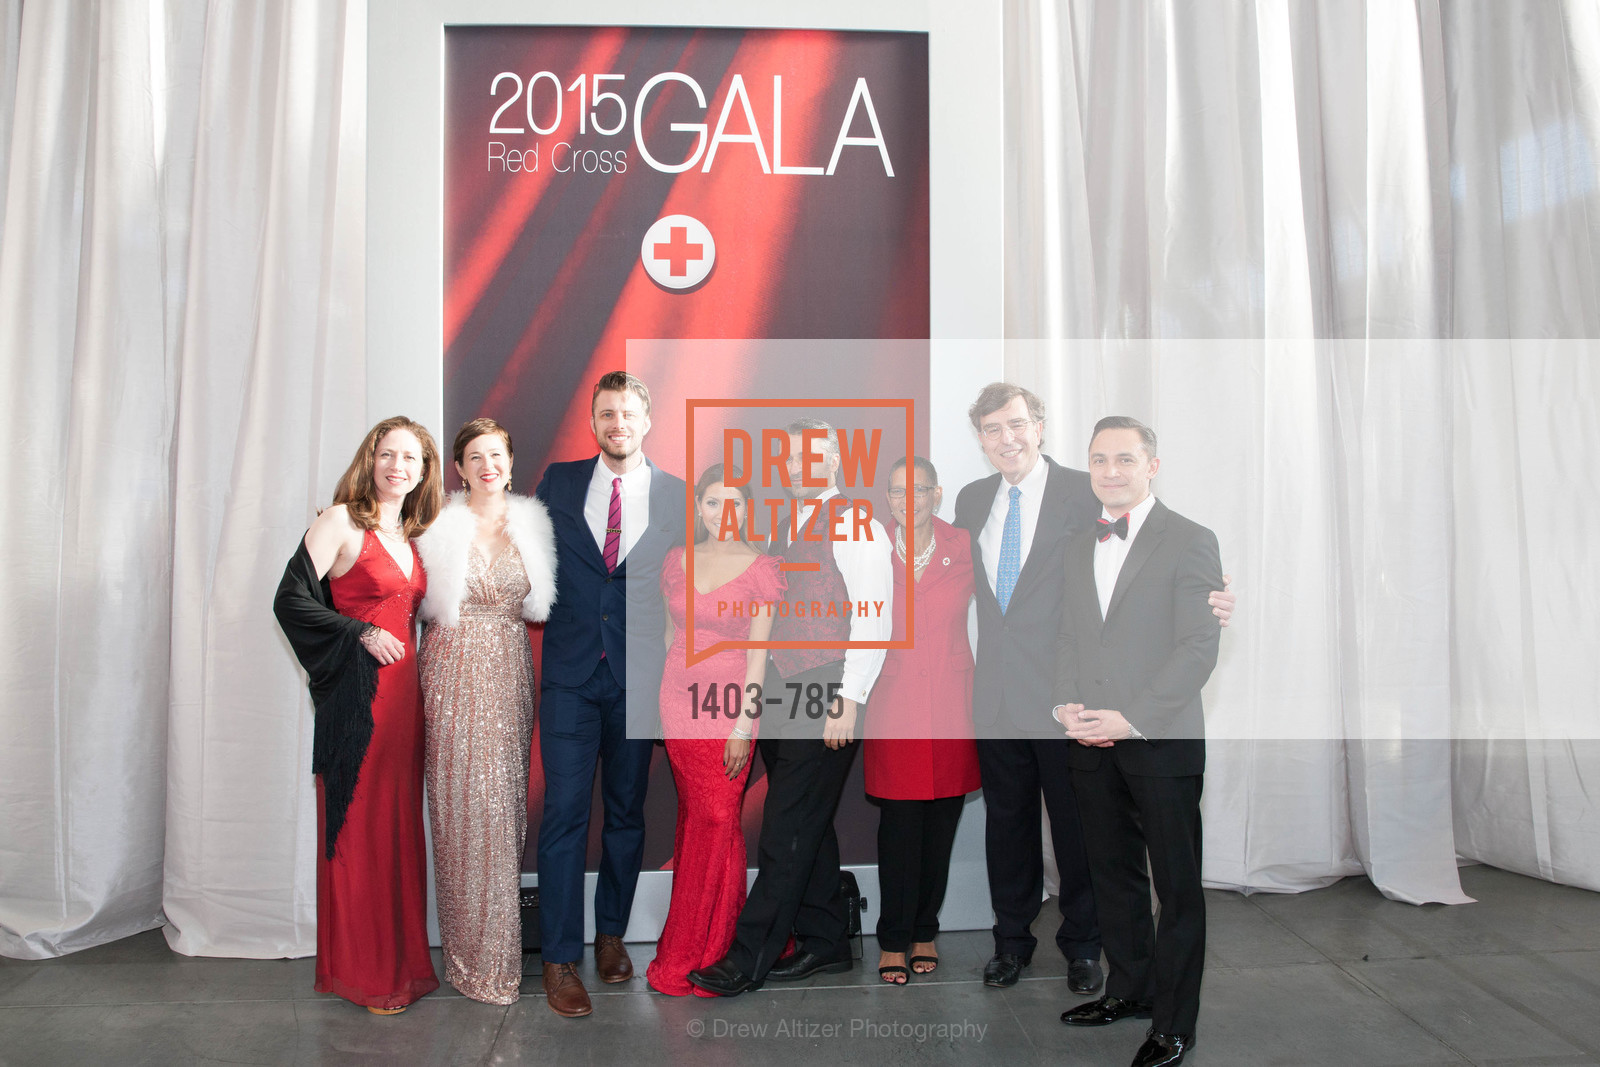 Moira Dowell, Emily White, Neil Freese, Lillian Phan, Hooman Khalili, Donnay Duay, Neal Litvack, Erza Garrett, 2015 RED CROSS Gala, US, April 12th, 2015,Drew Altizer, Drew Altizer Photography, full-service agency, private events, San Francisco photographer, photographer california